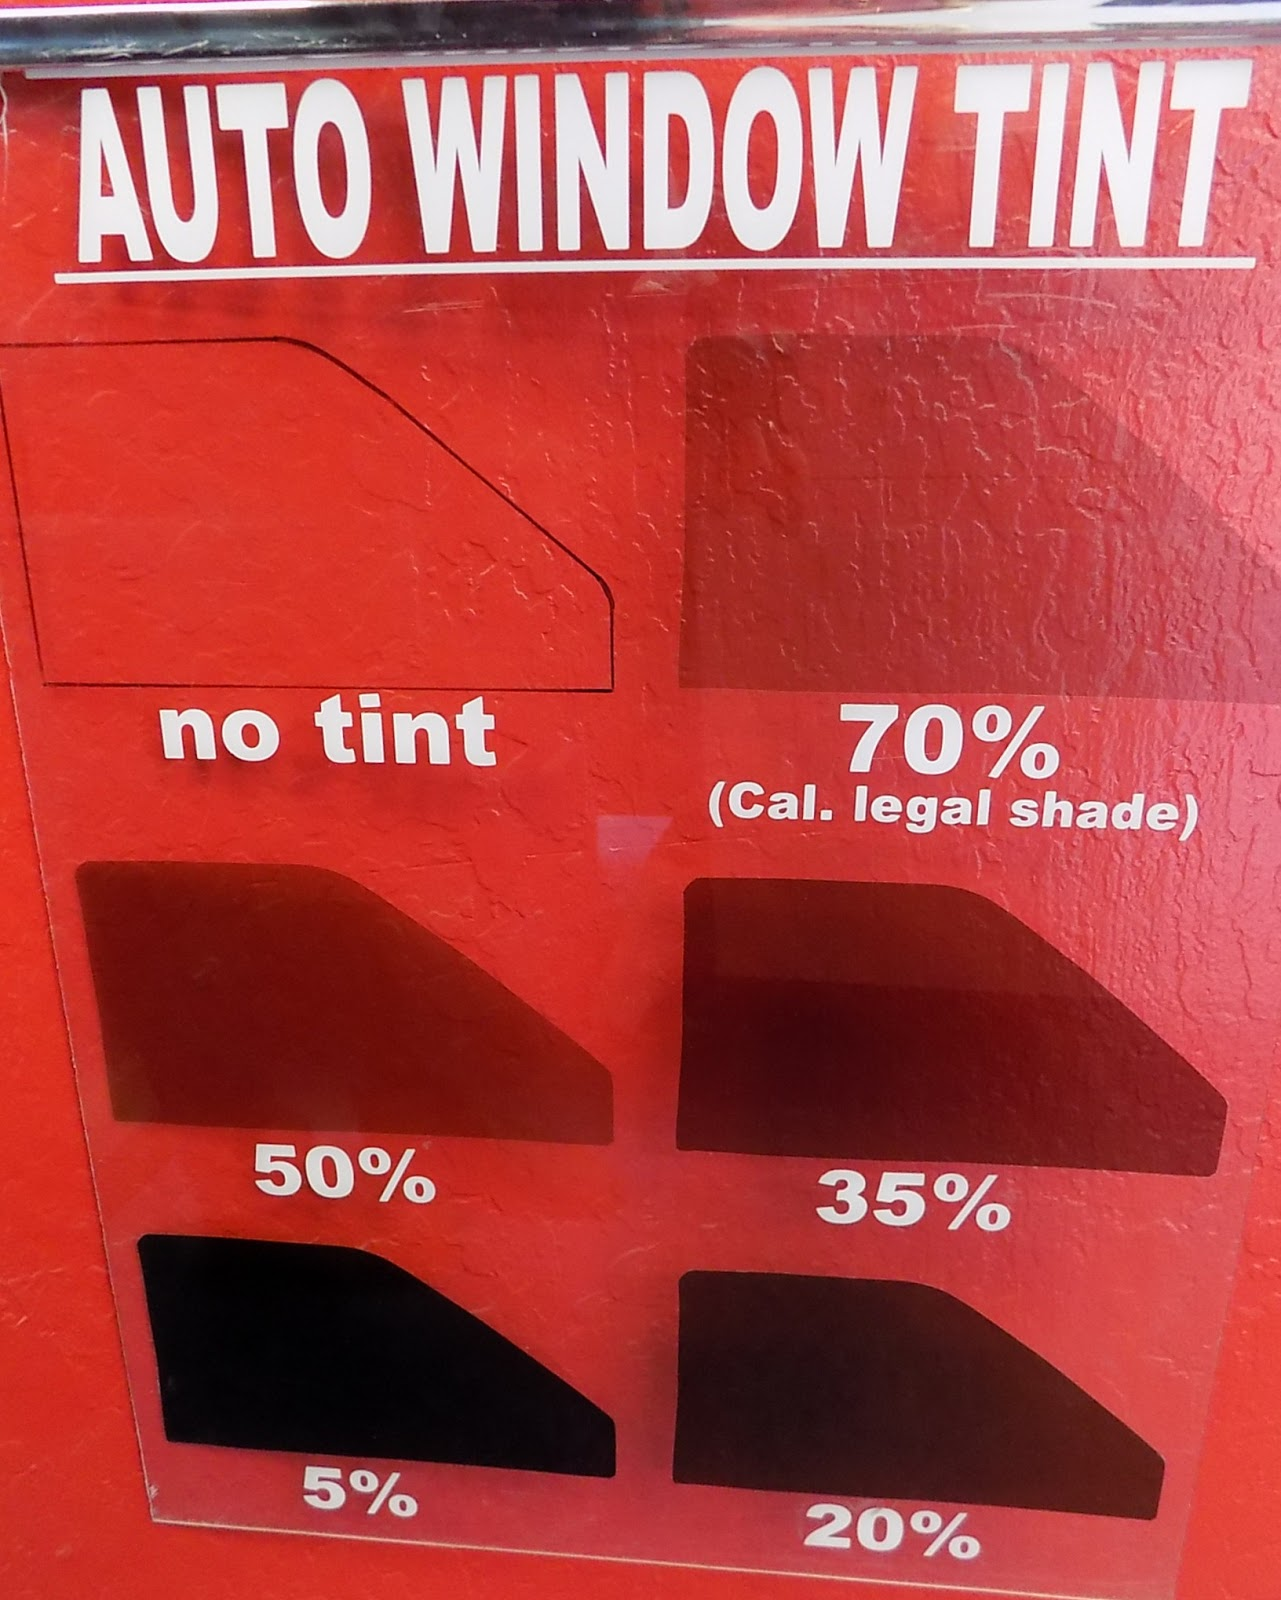 Auto window tinting gallery tint removal auto for 2 5 window tint